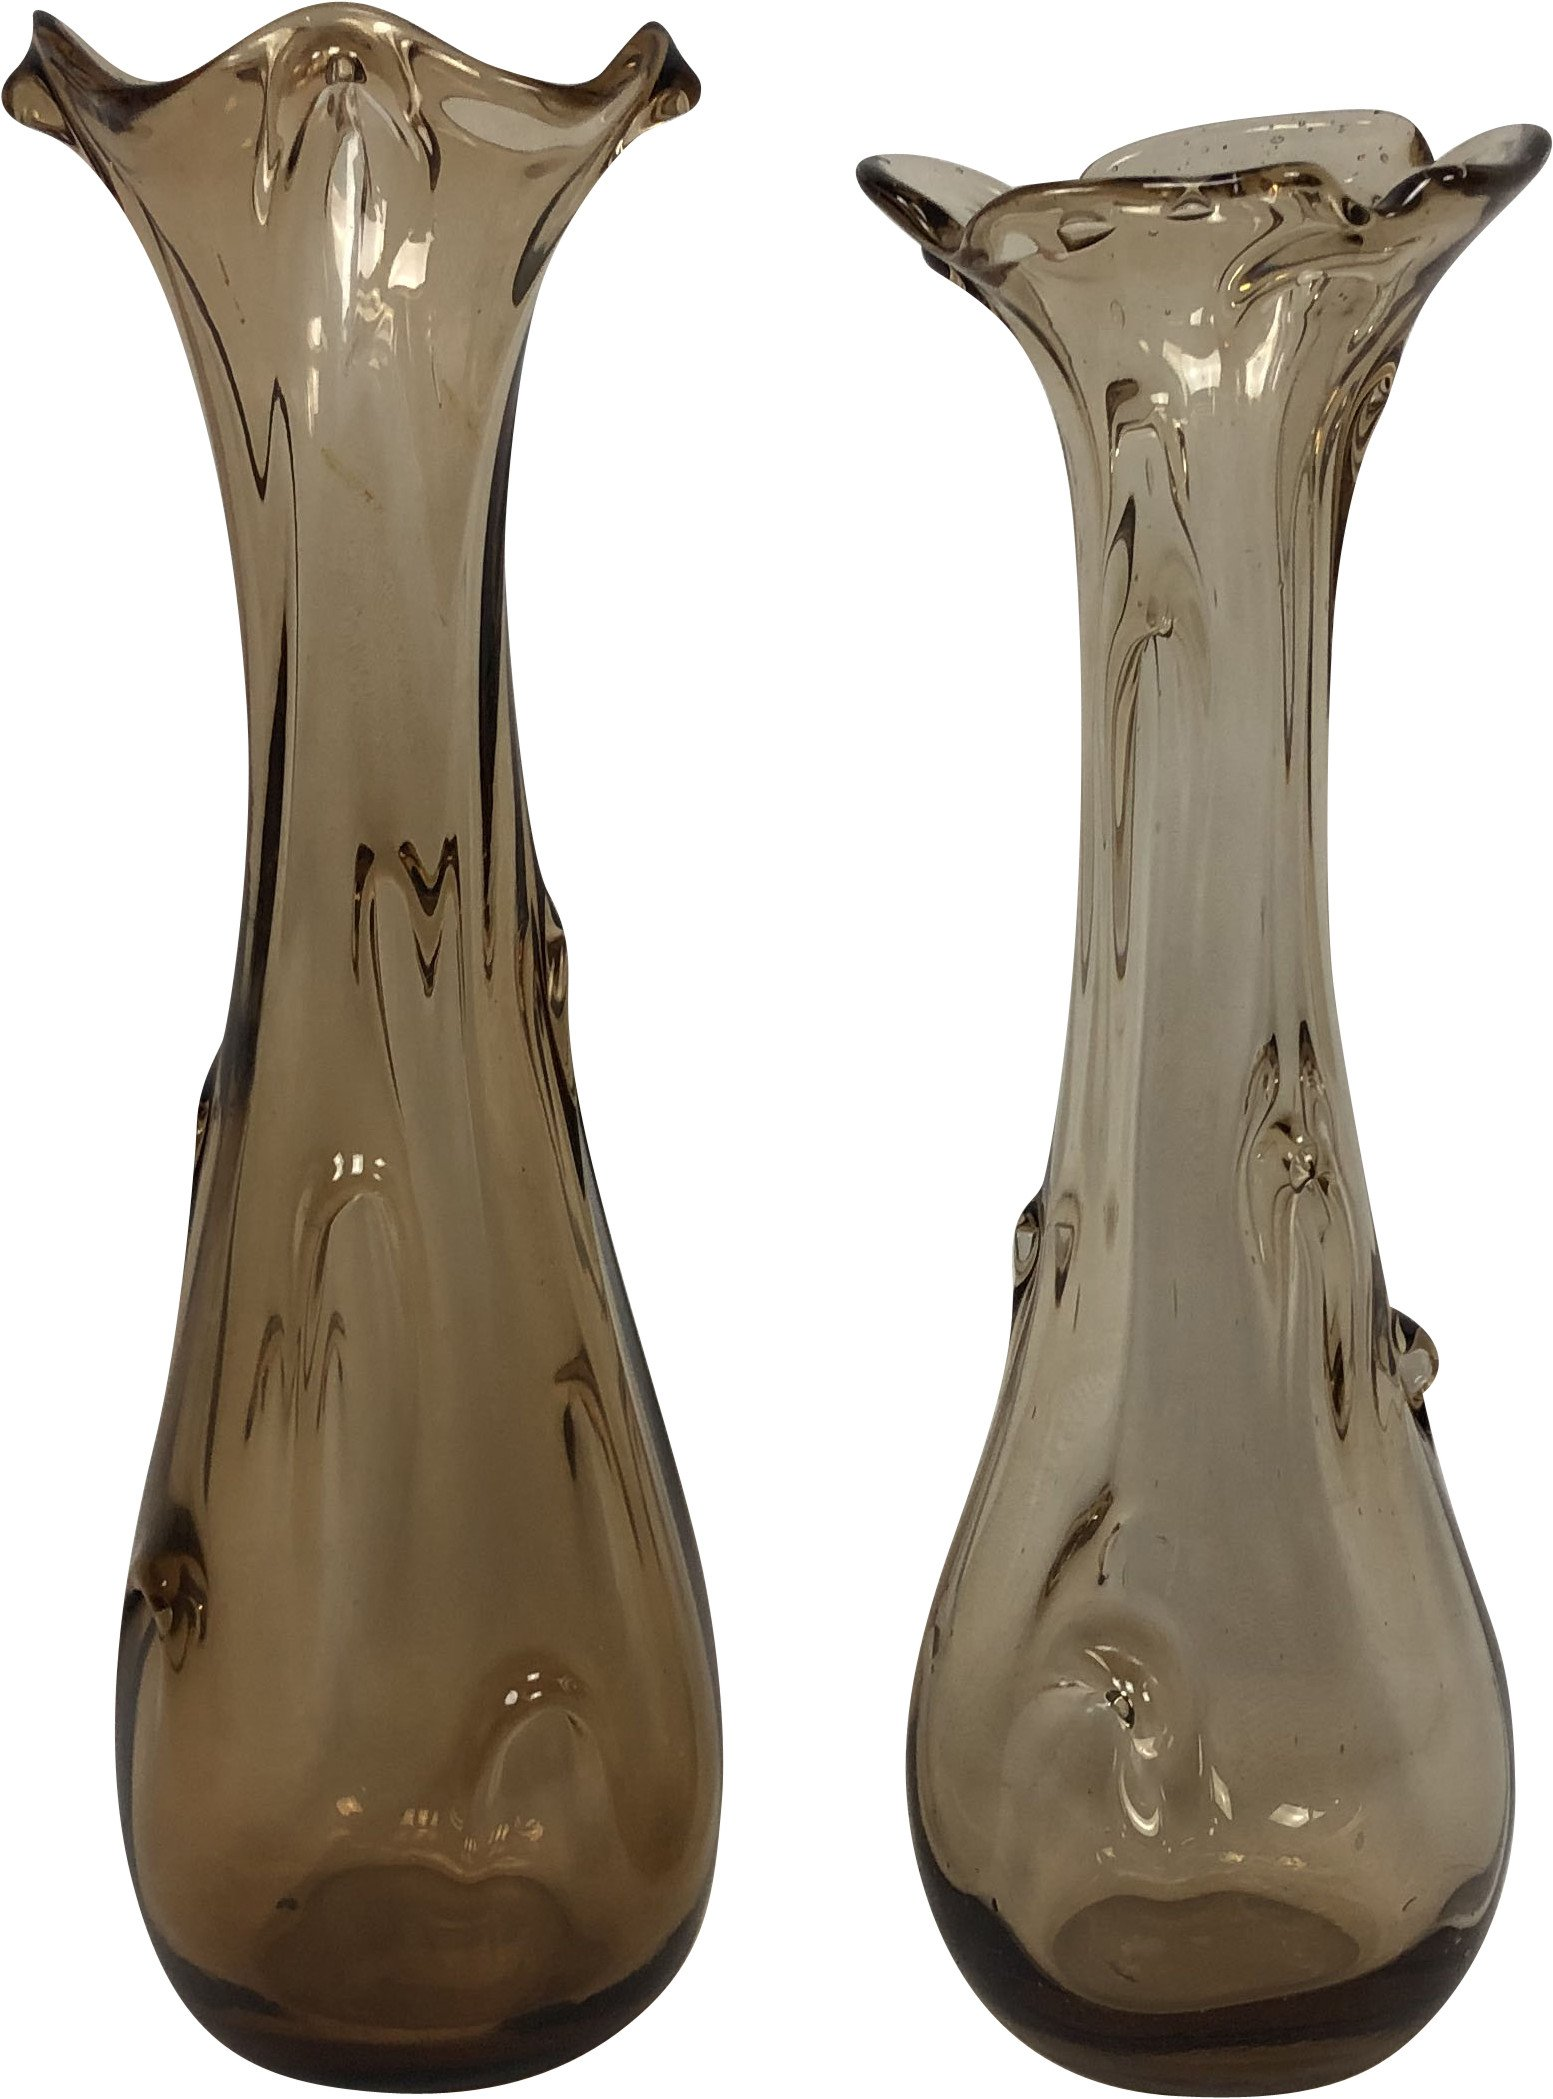 Pair of Vases, Poland, 1960s